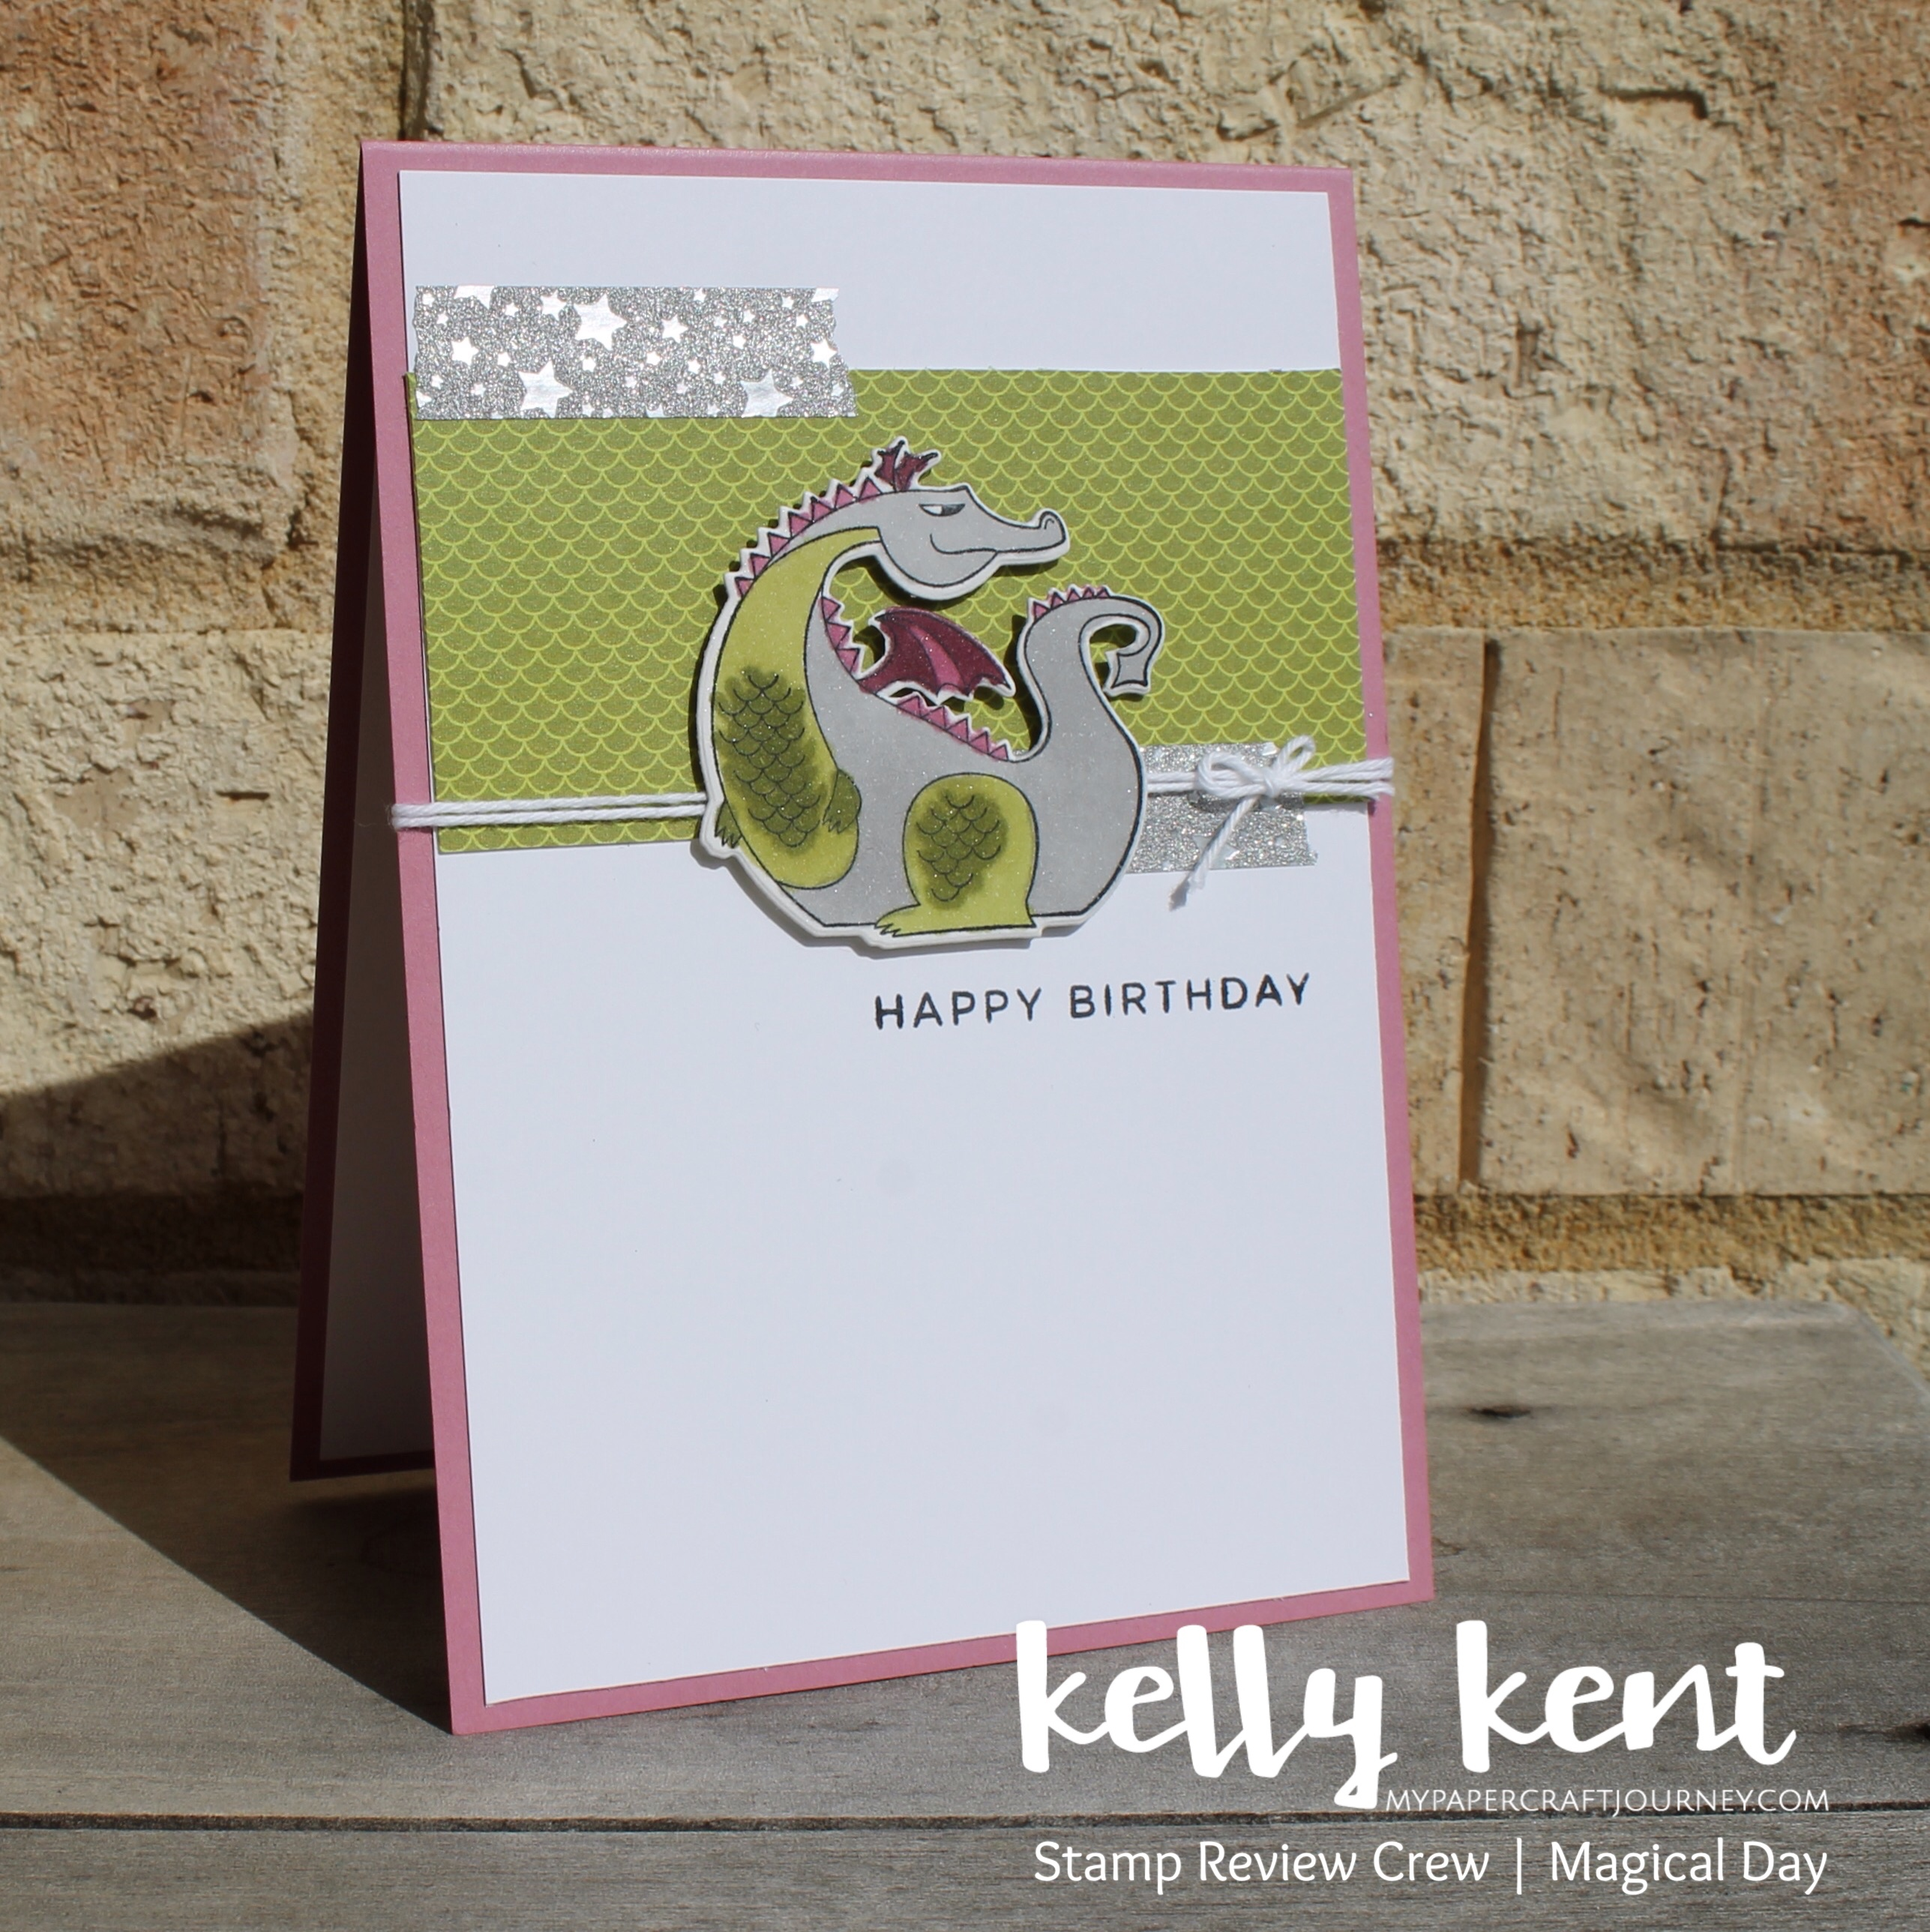 Stamp Review Crew - Magical Day   kelly kent